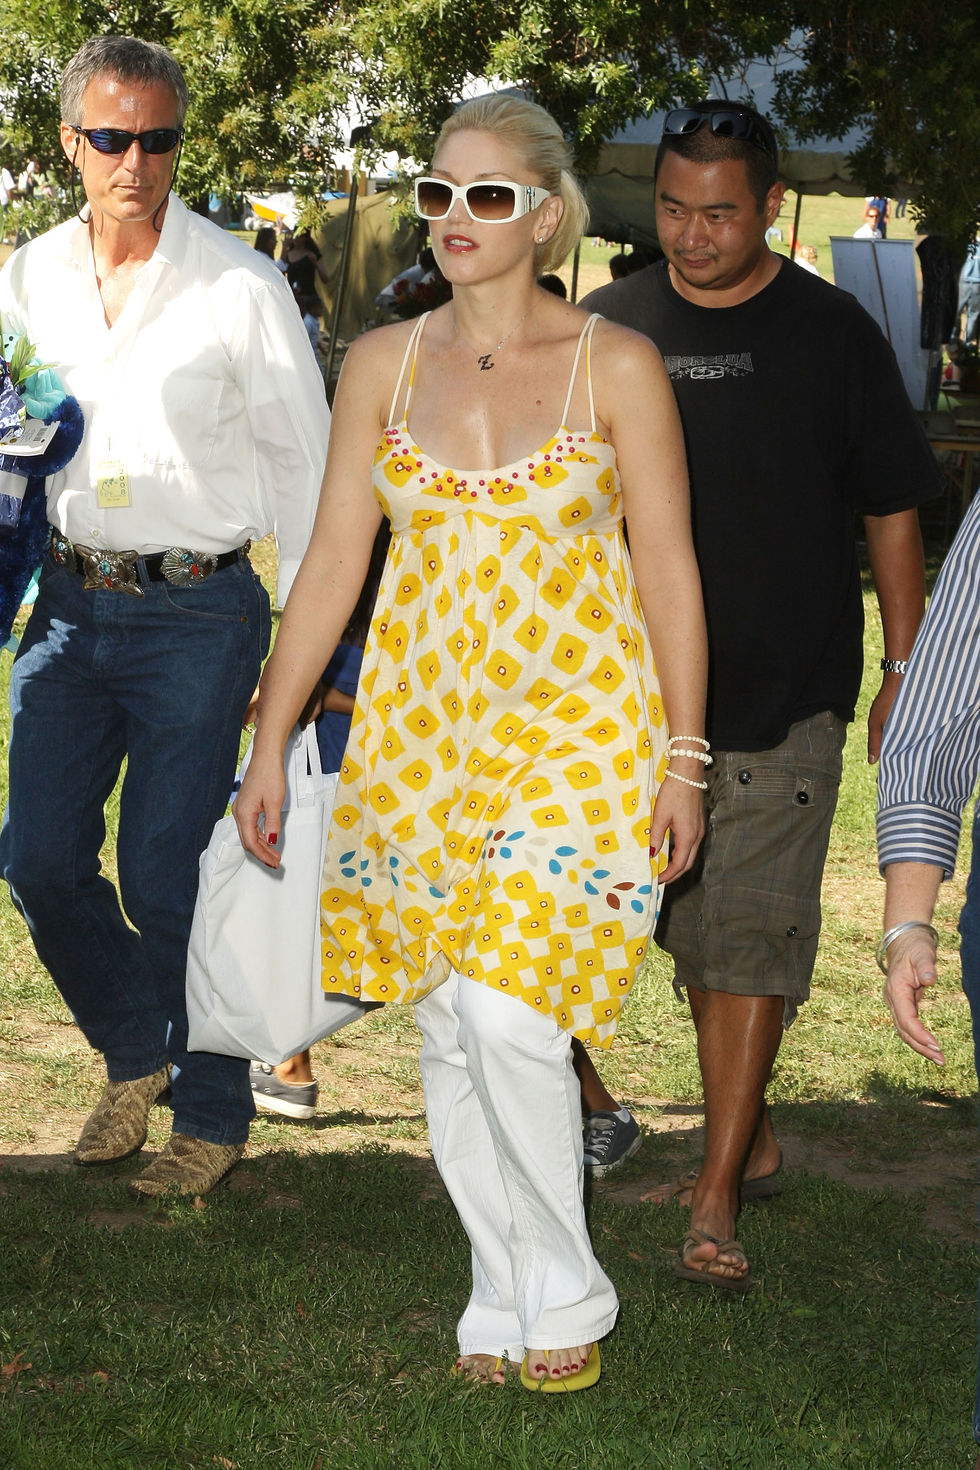 gwen-stefani-6th-annual-roots-and-shoots-day-of-peace-in-los-angeles-05